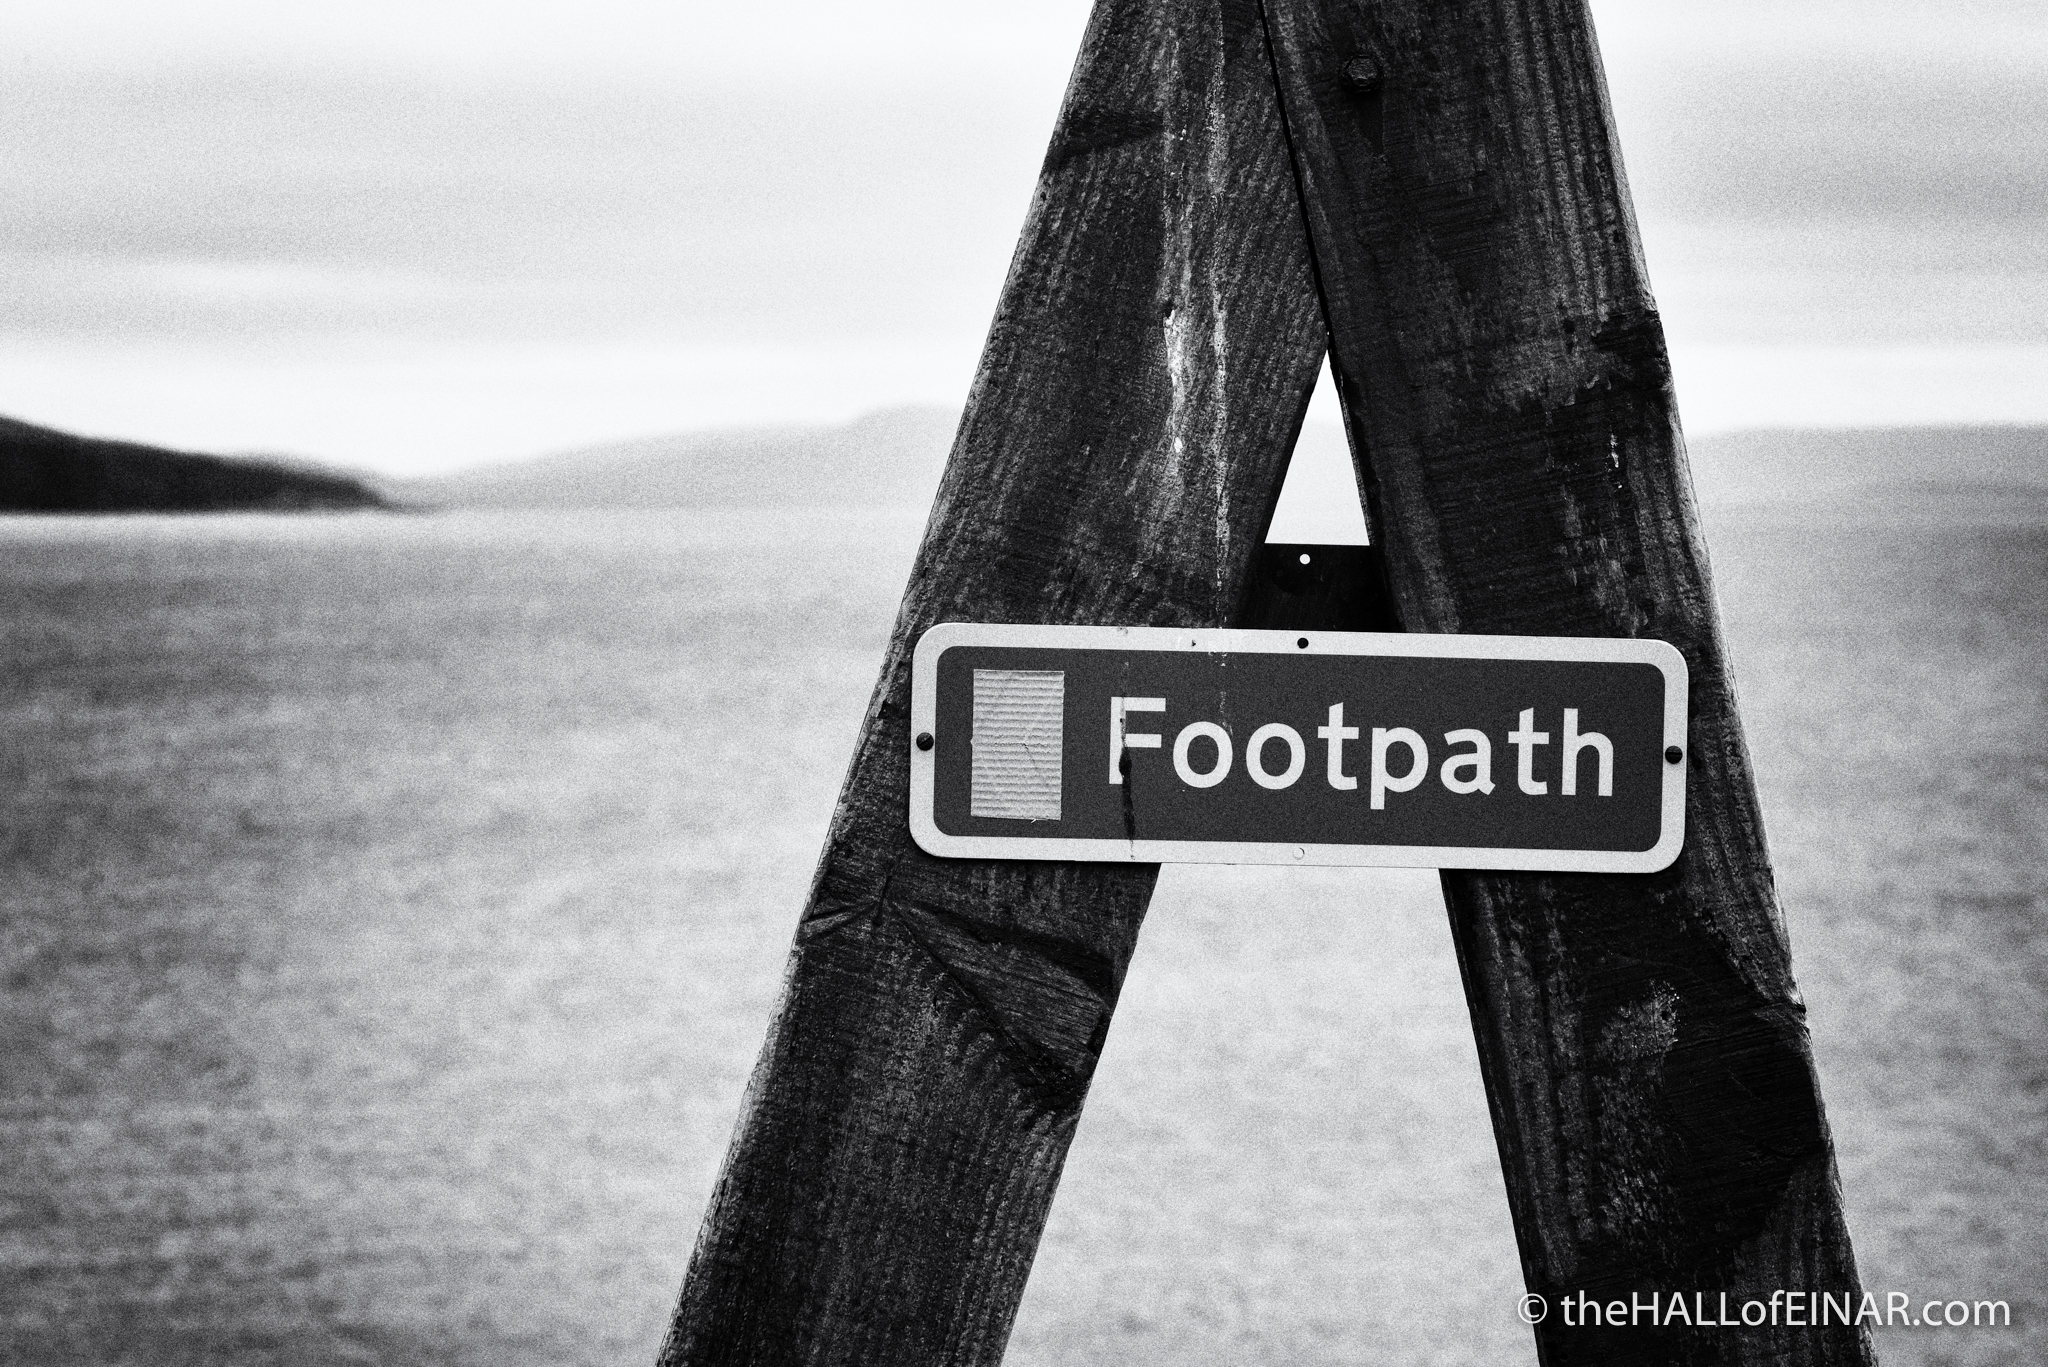 Footpath on Westray - photograph (c) 2016 David Bailey (not the)